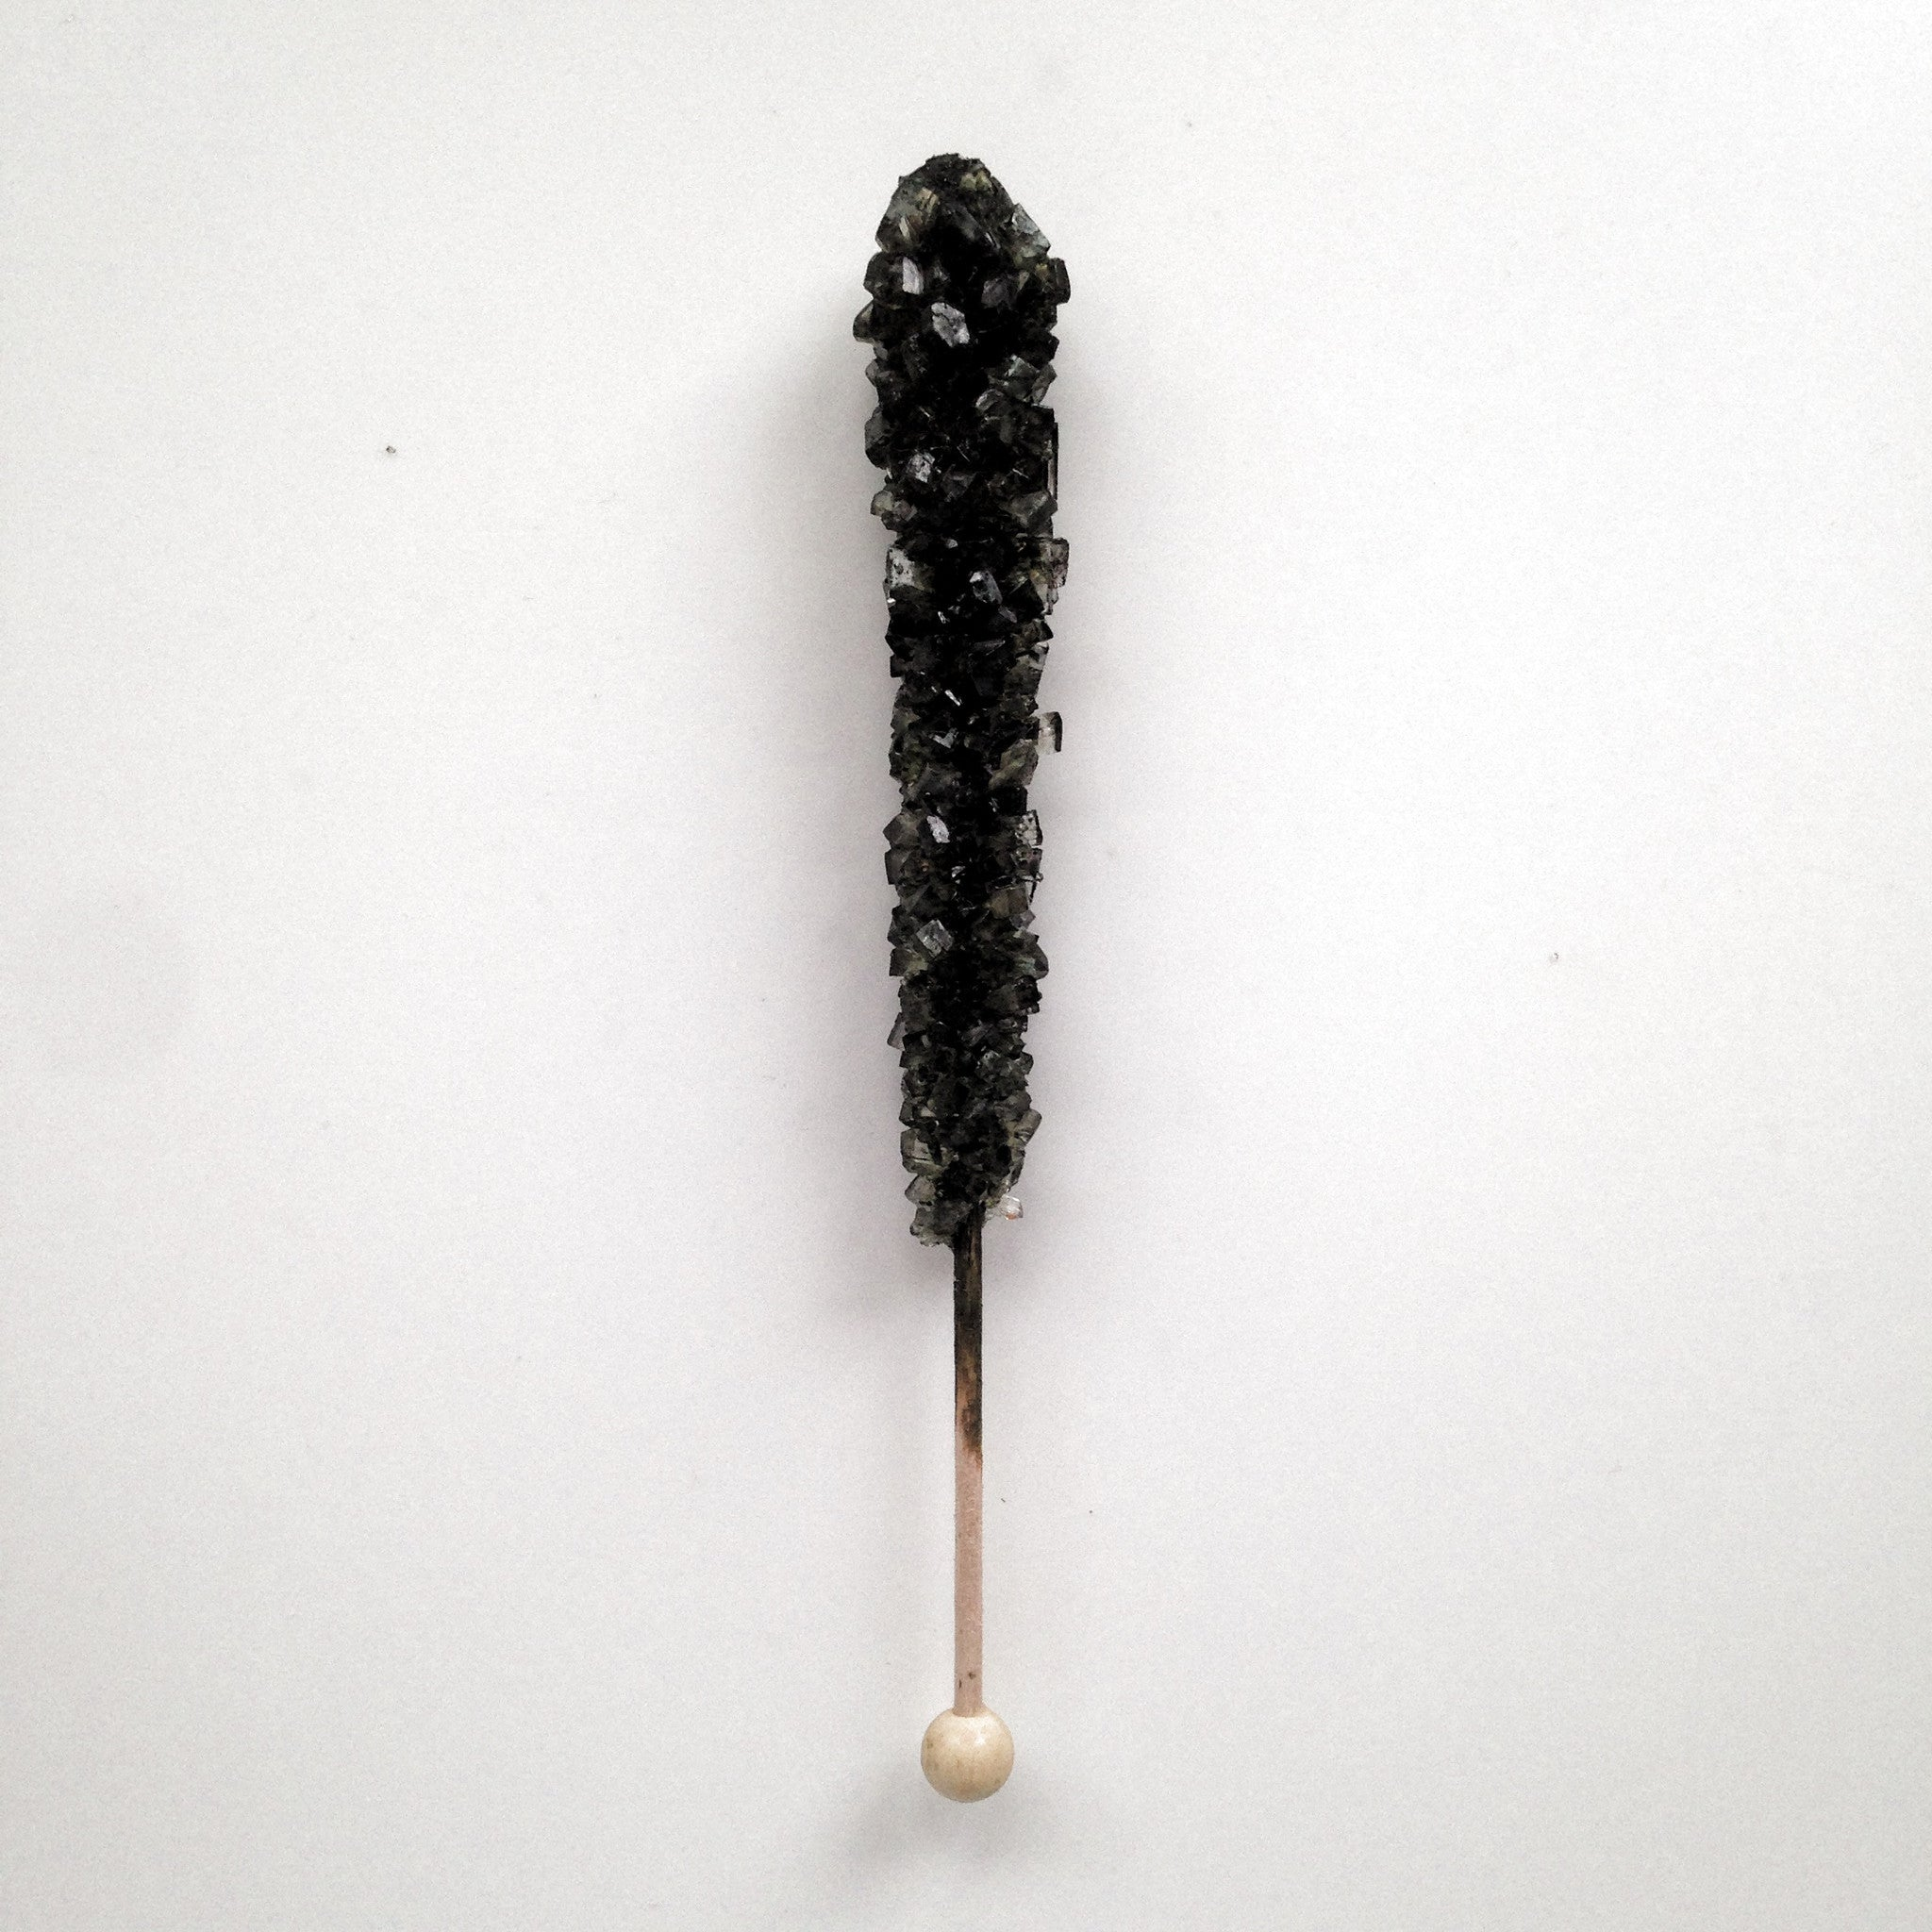 Black Cherry Sugar Swizzle Stick - The Sweet Hostess  - 1